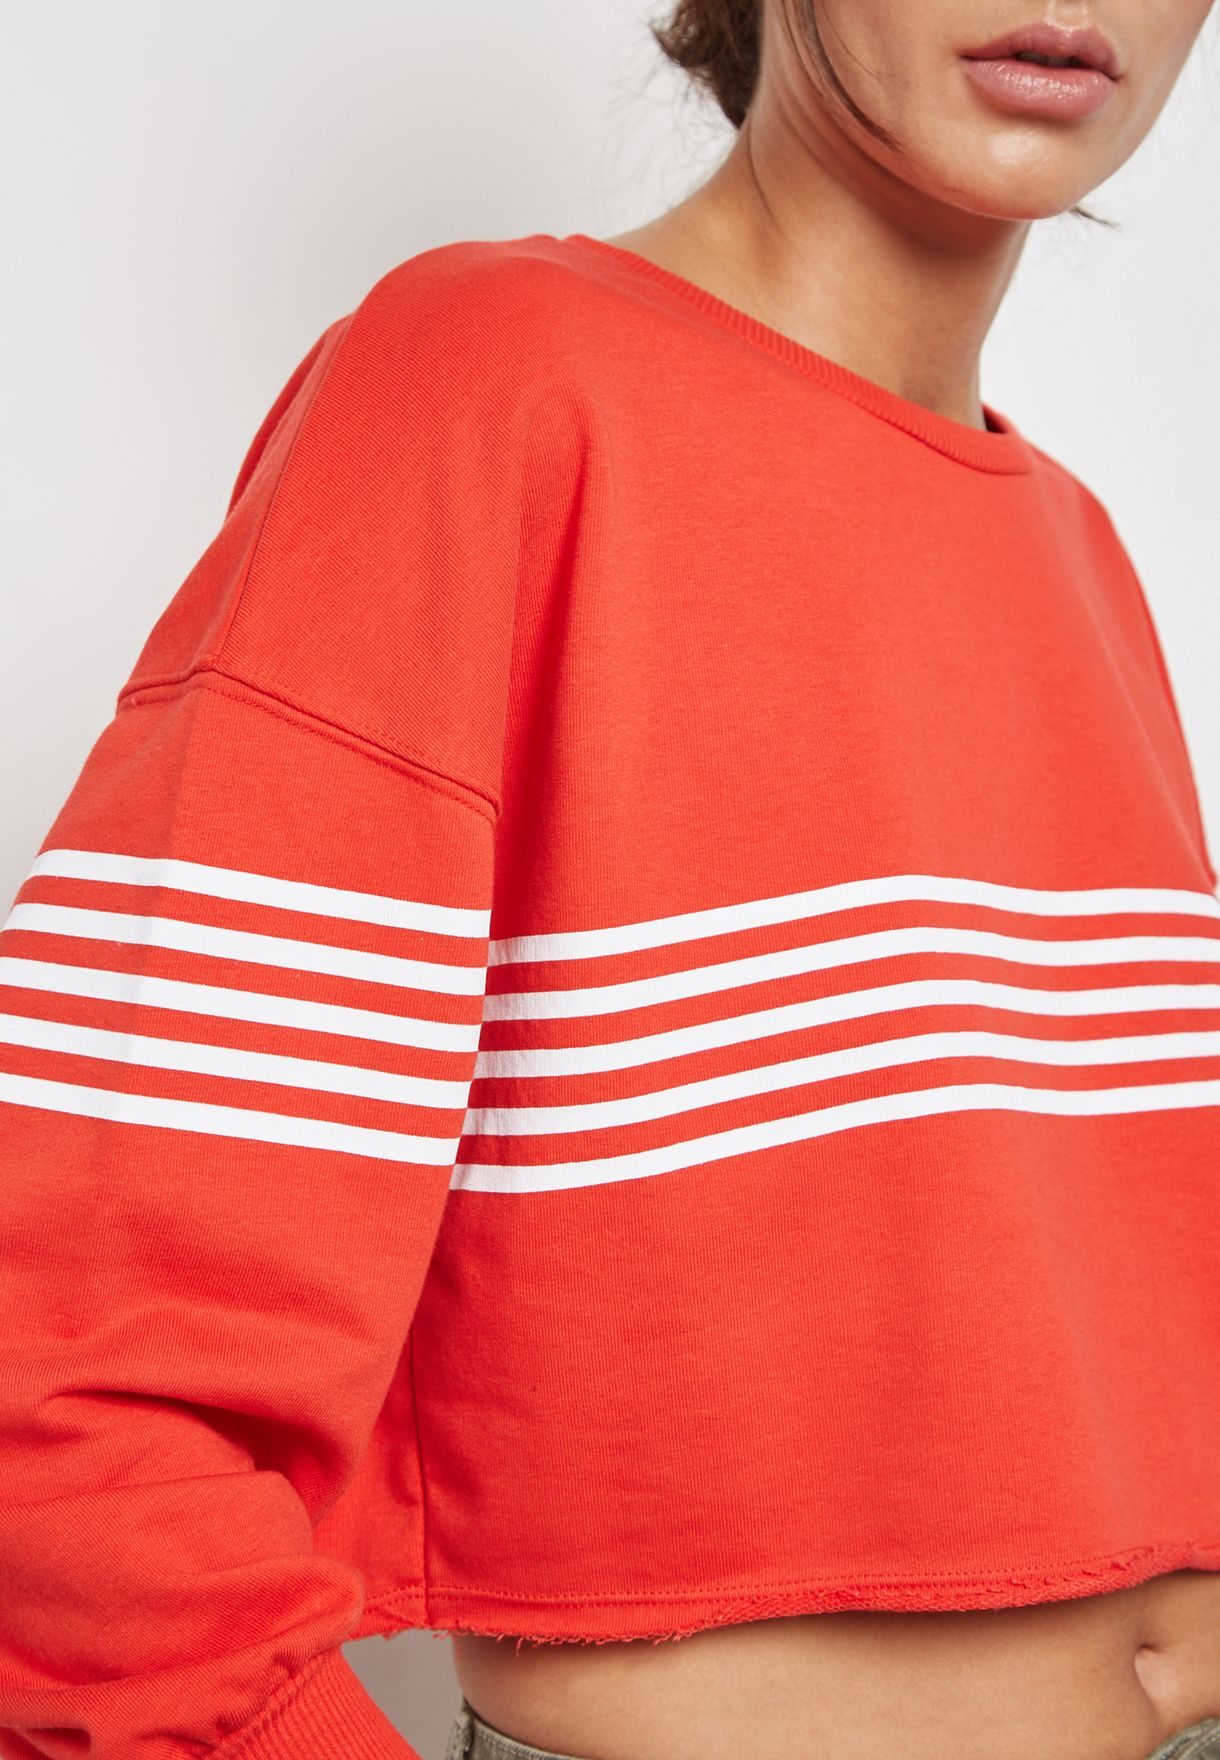 Contrast Striped Sweatshirt